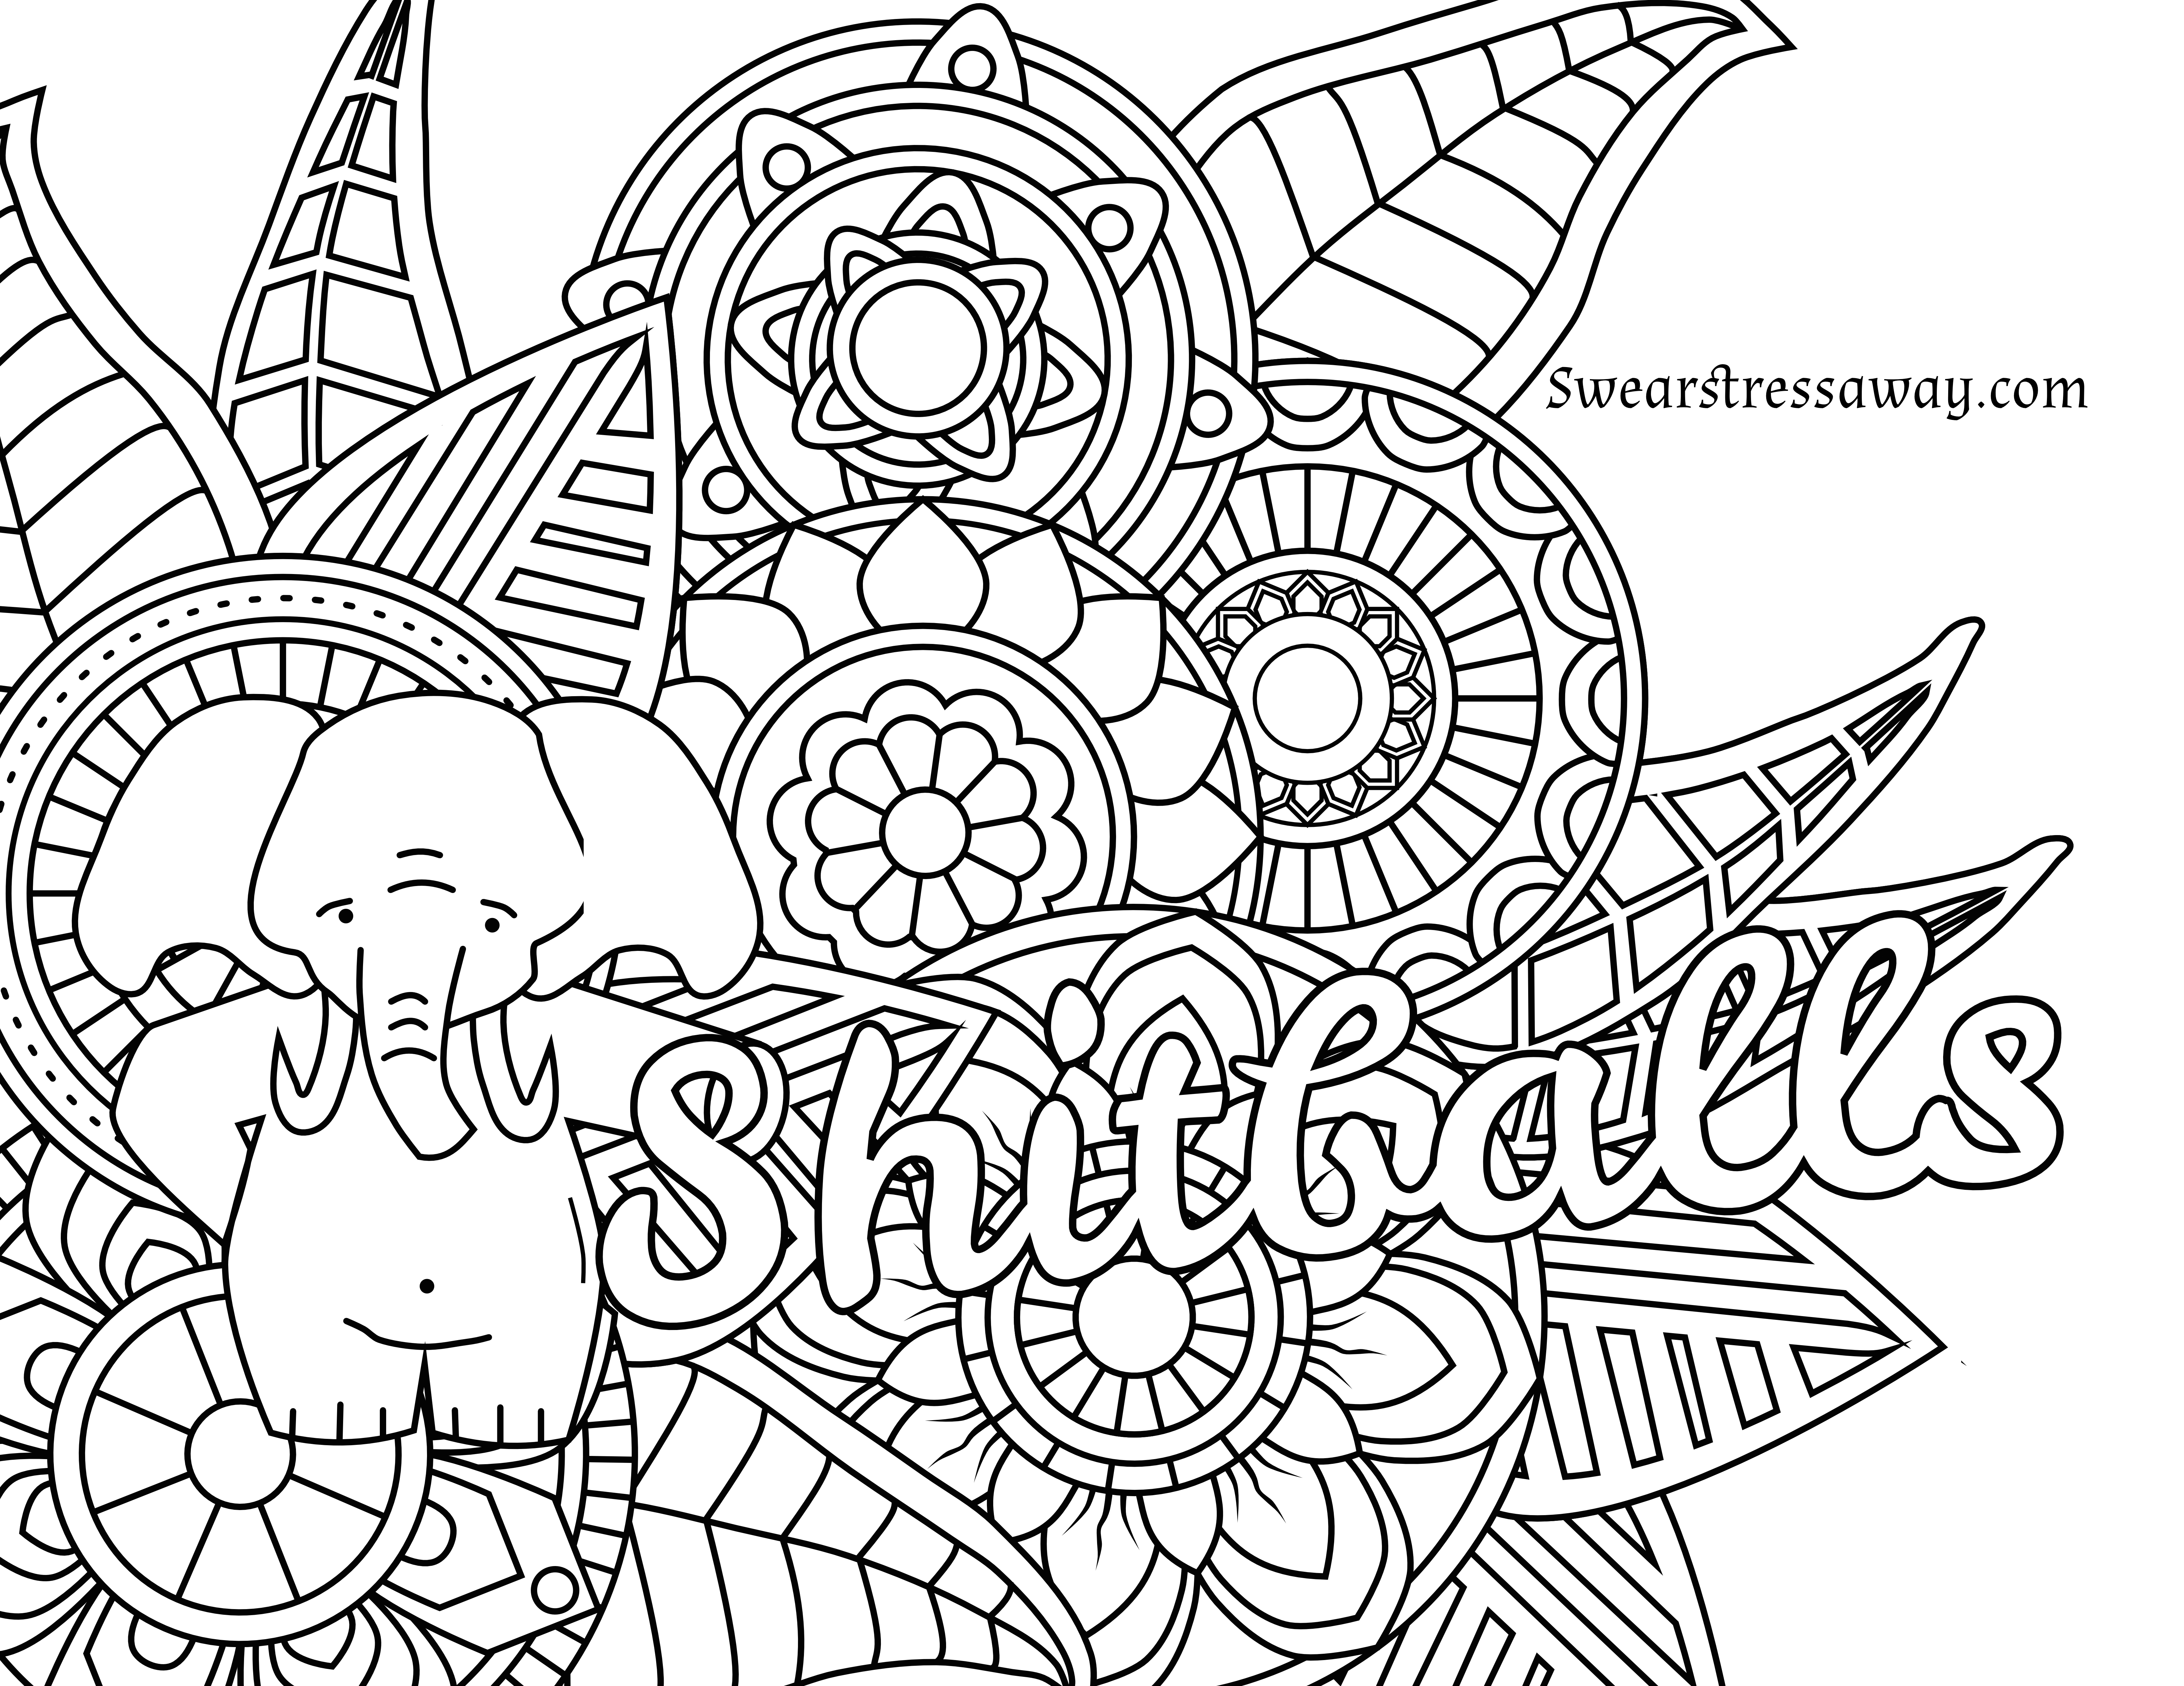 Free Printable Coloring Page - Shitballs - Swear Word Coloring Page - Free Printable Coloring Pages For Adults Only Swear Words